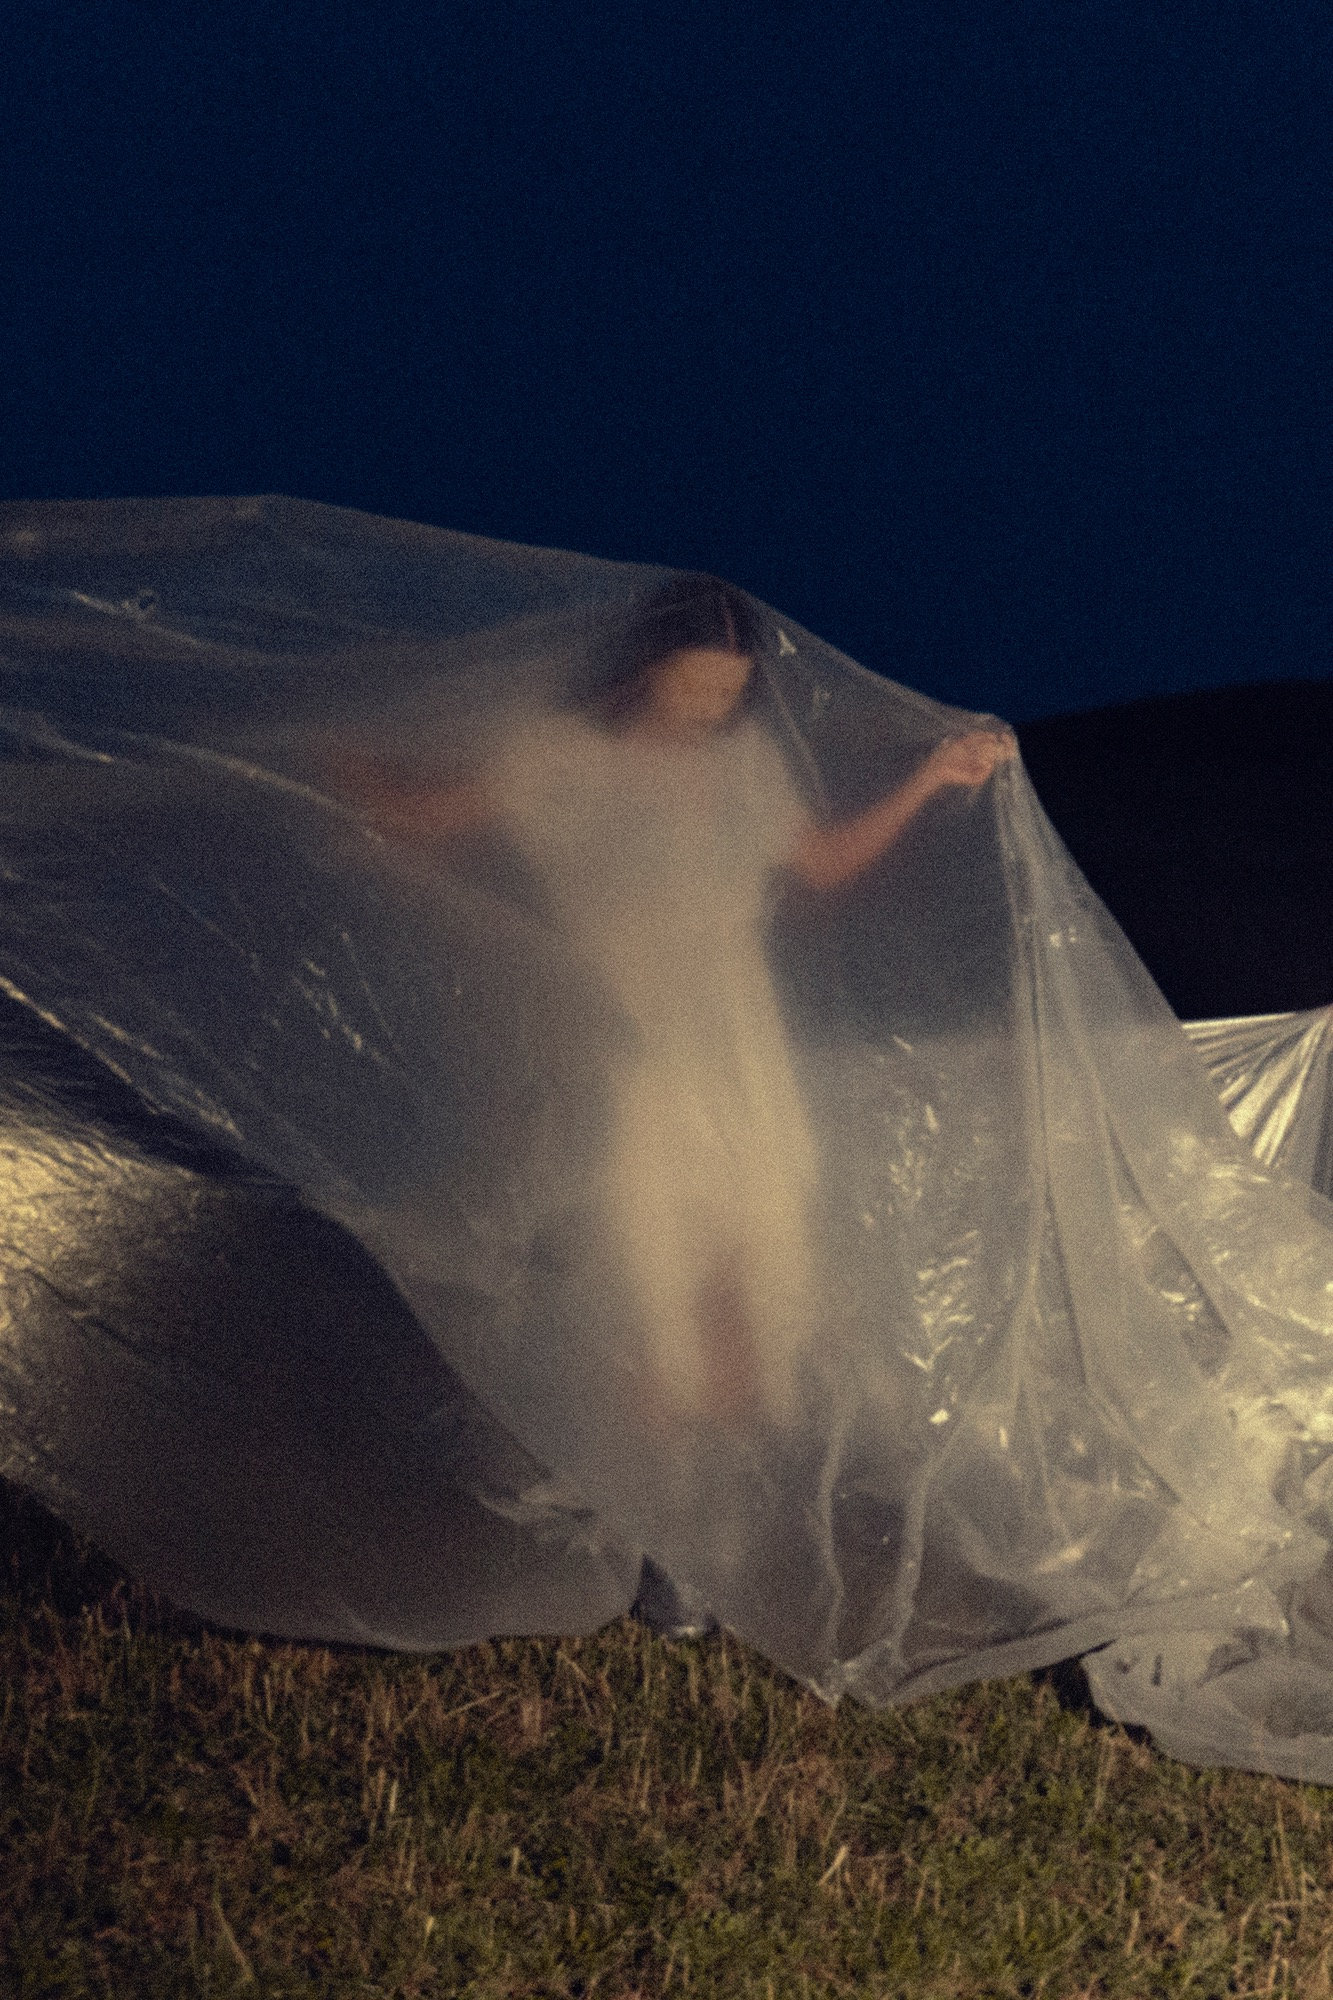 A photograph by Federica Lampone and Giorgia Marcucci as published in Photo/Foto Magazine